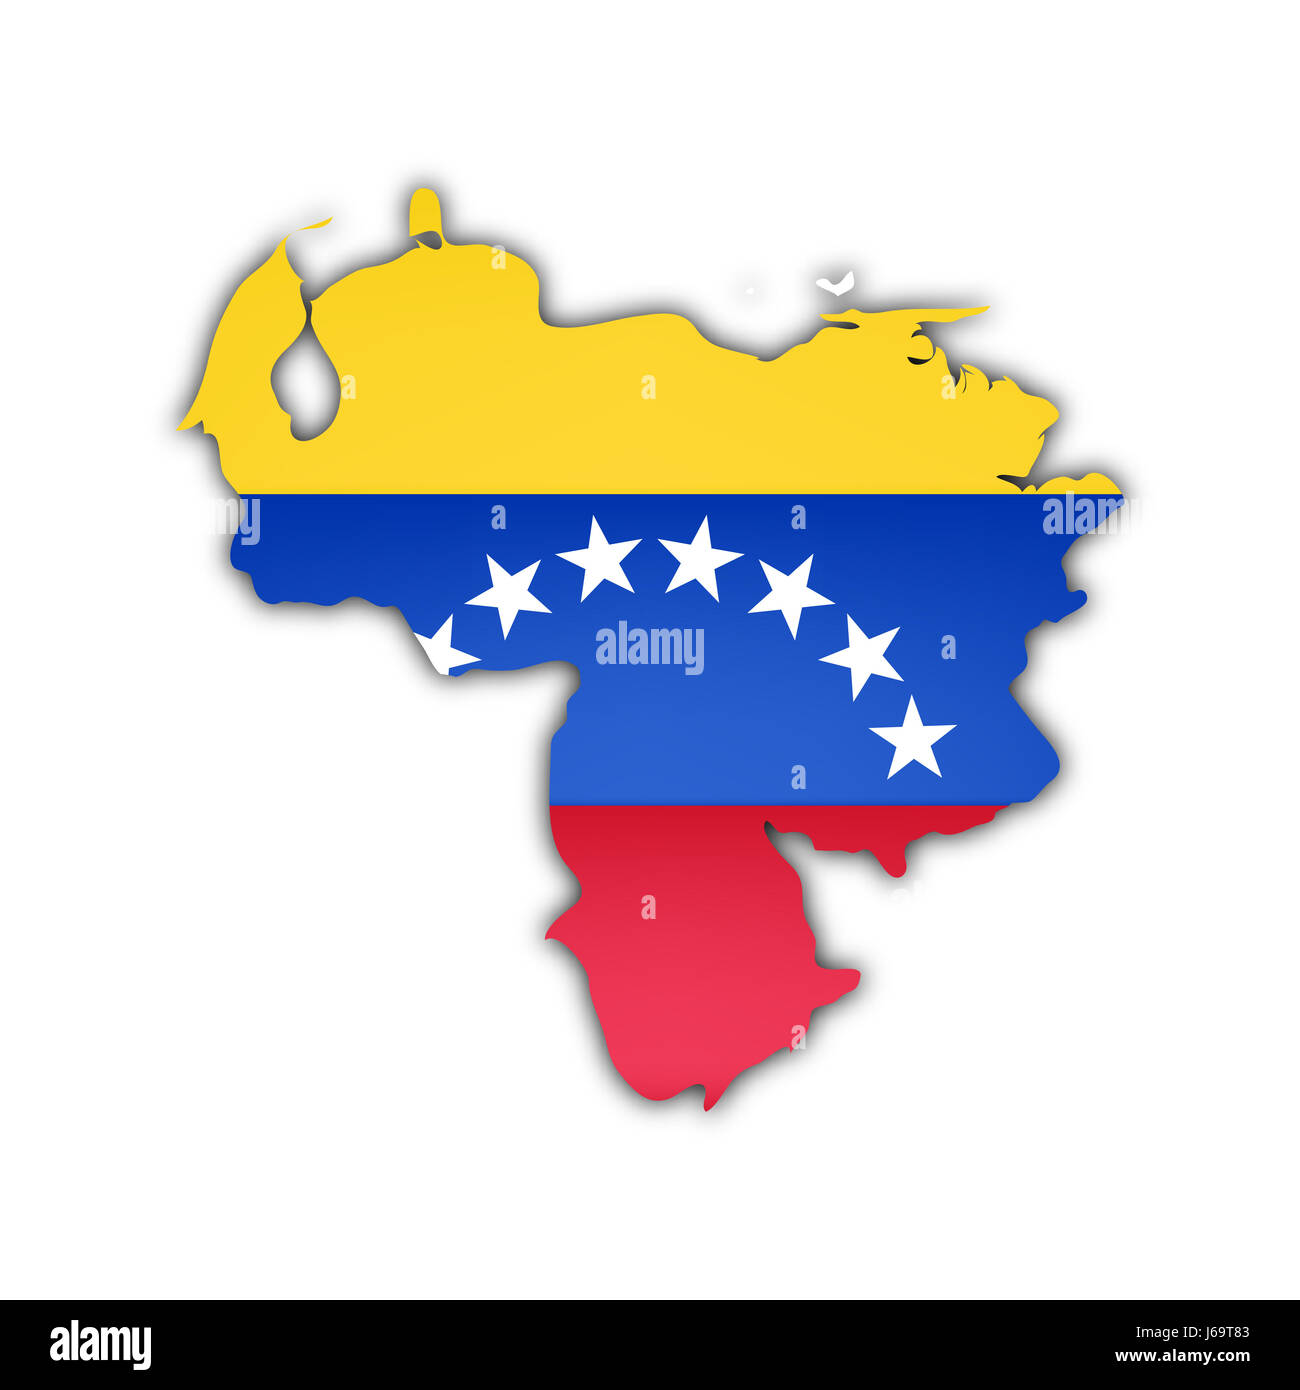 america flag south venezuela map atlas map of the world travel Stock ...